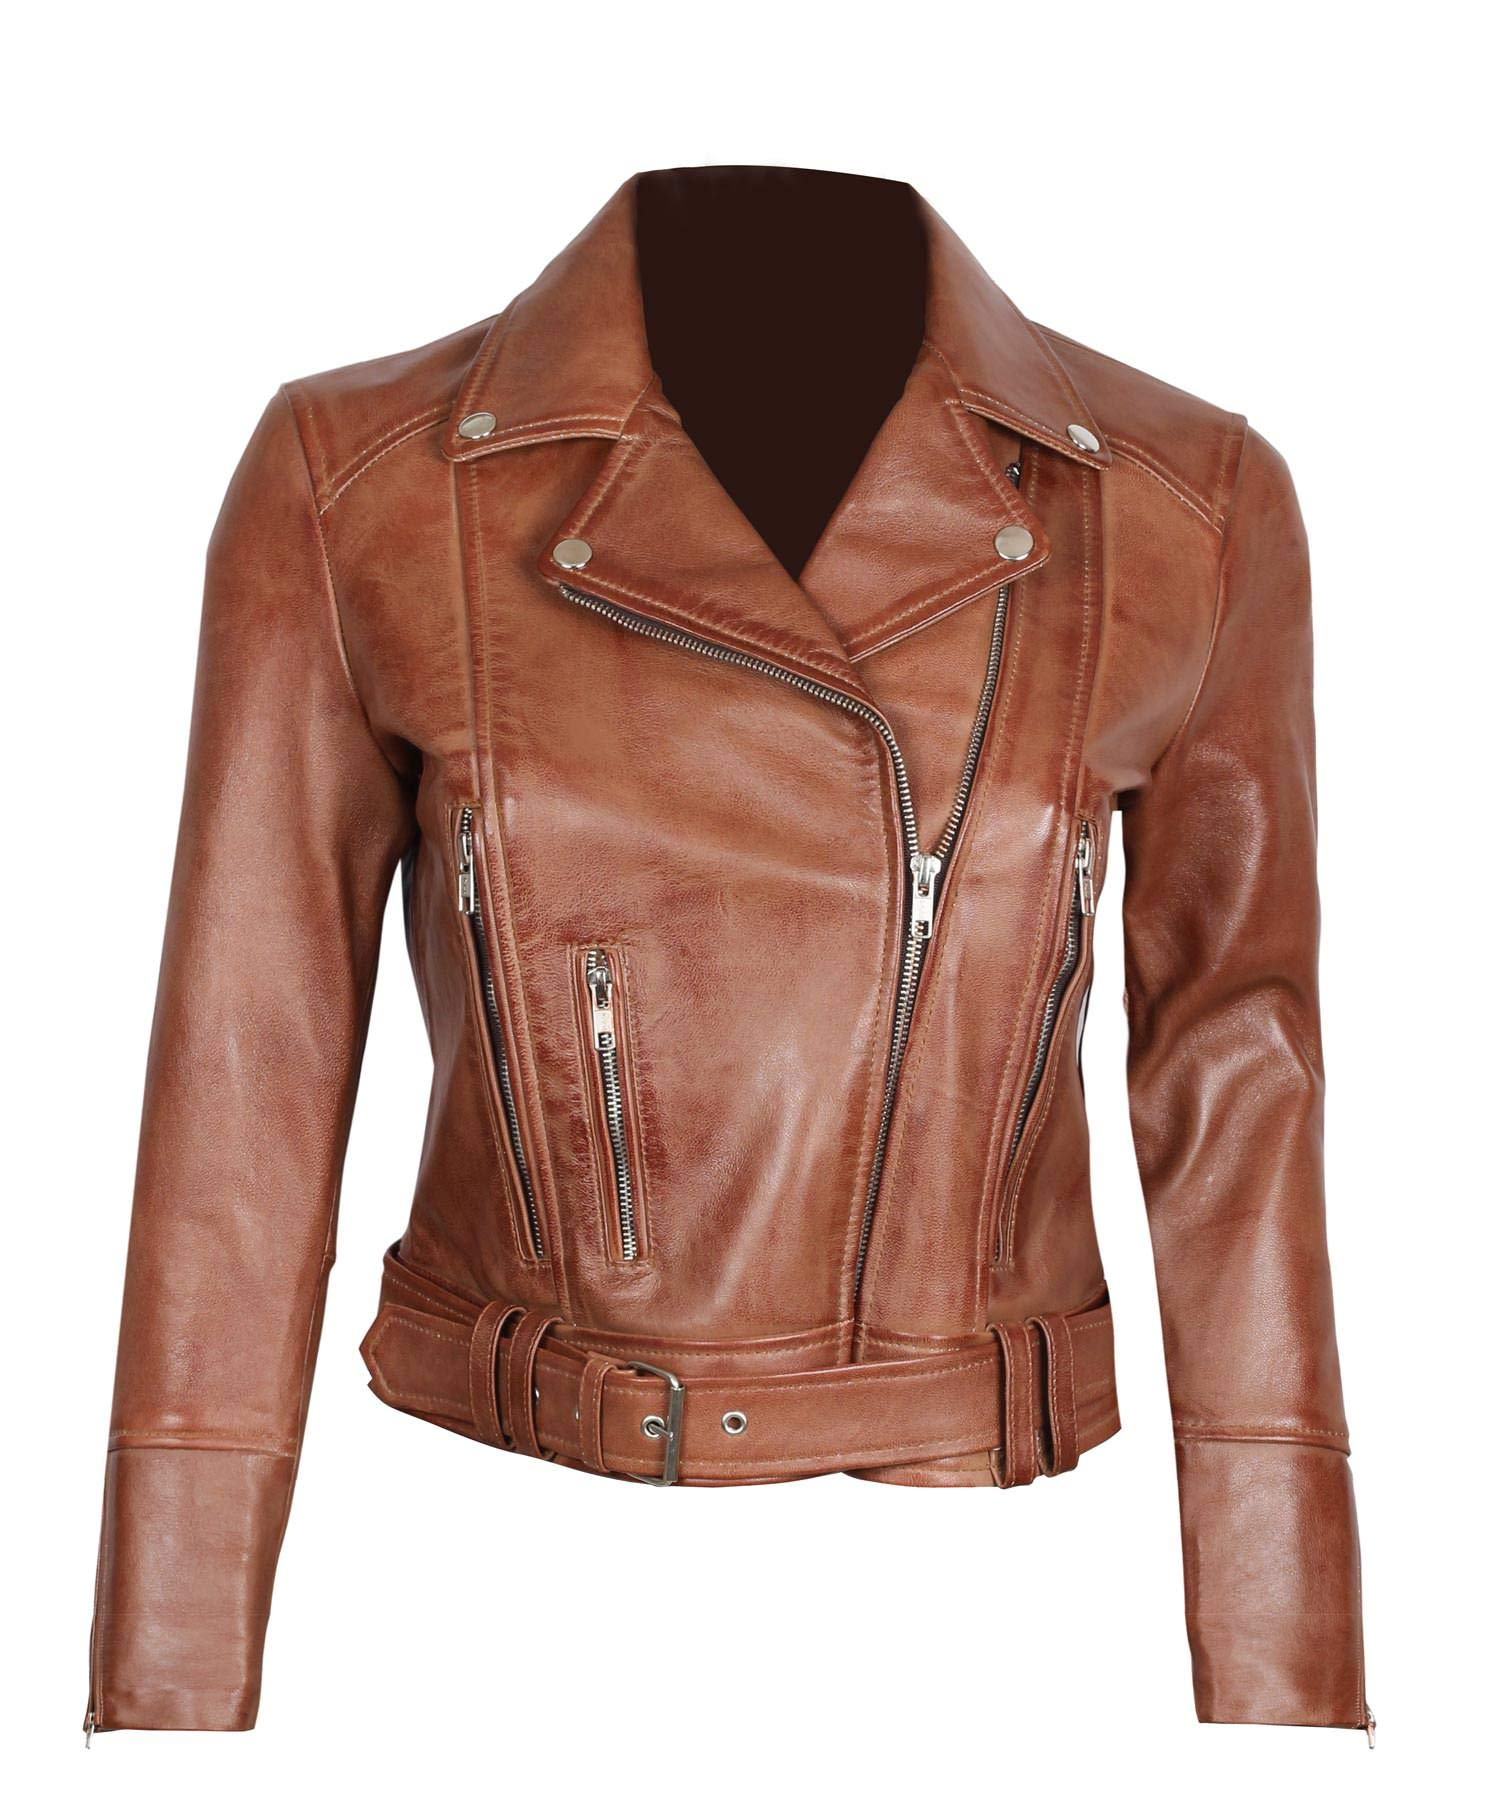 db846dccd Decrum Brown Womens Leather Jackets - Leather Moto Jacket Women ...